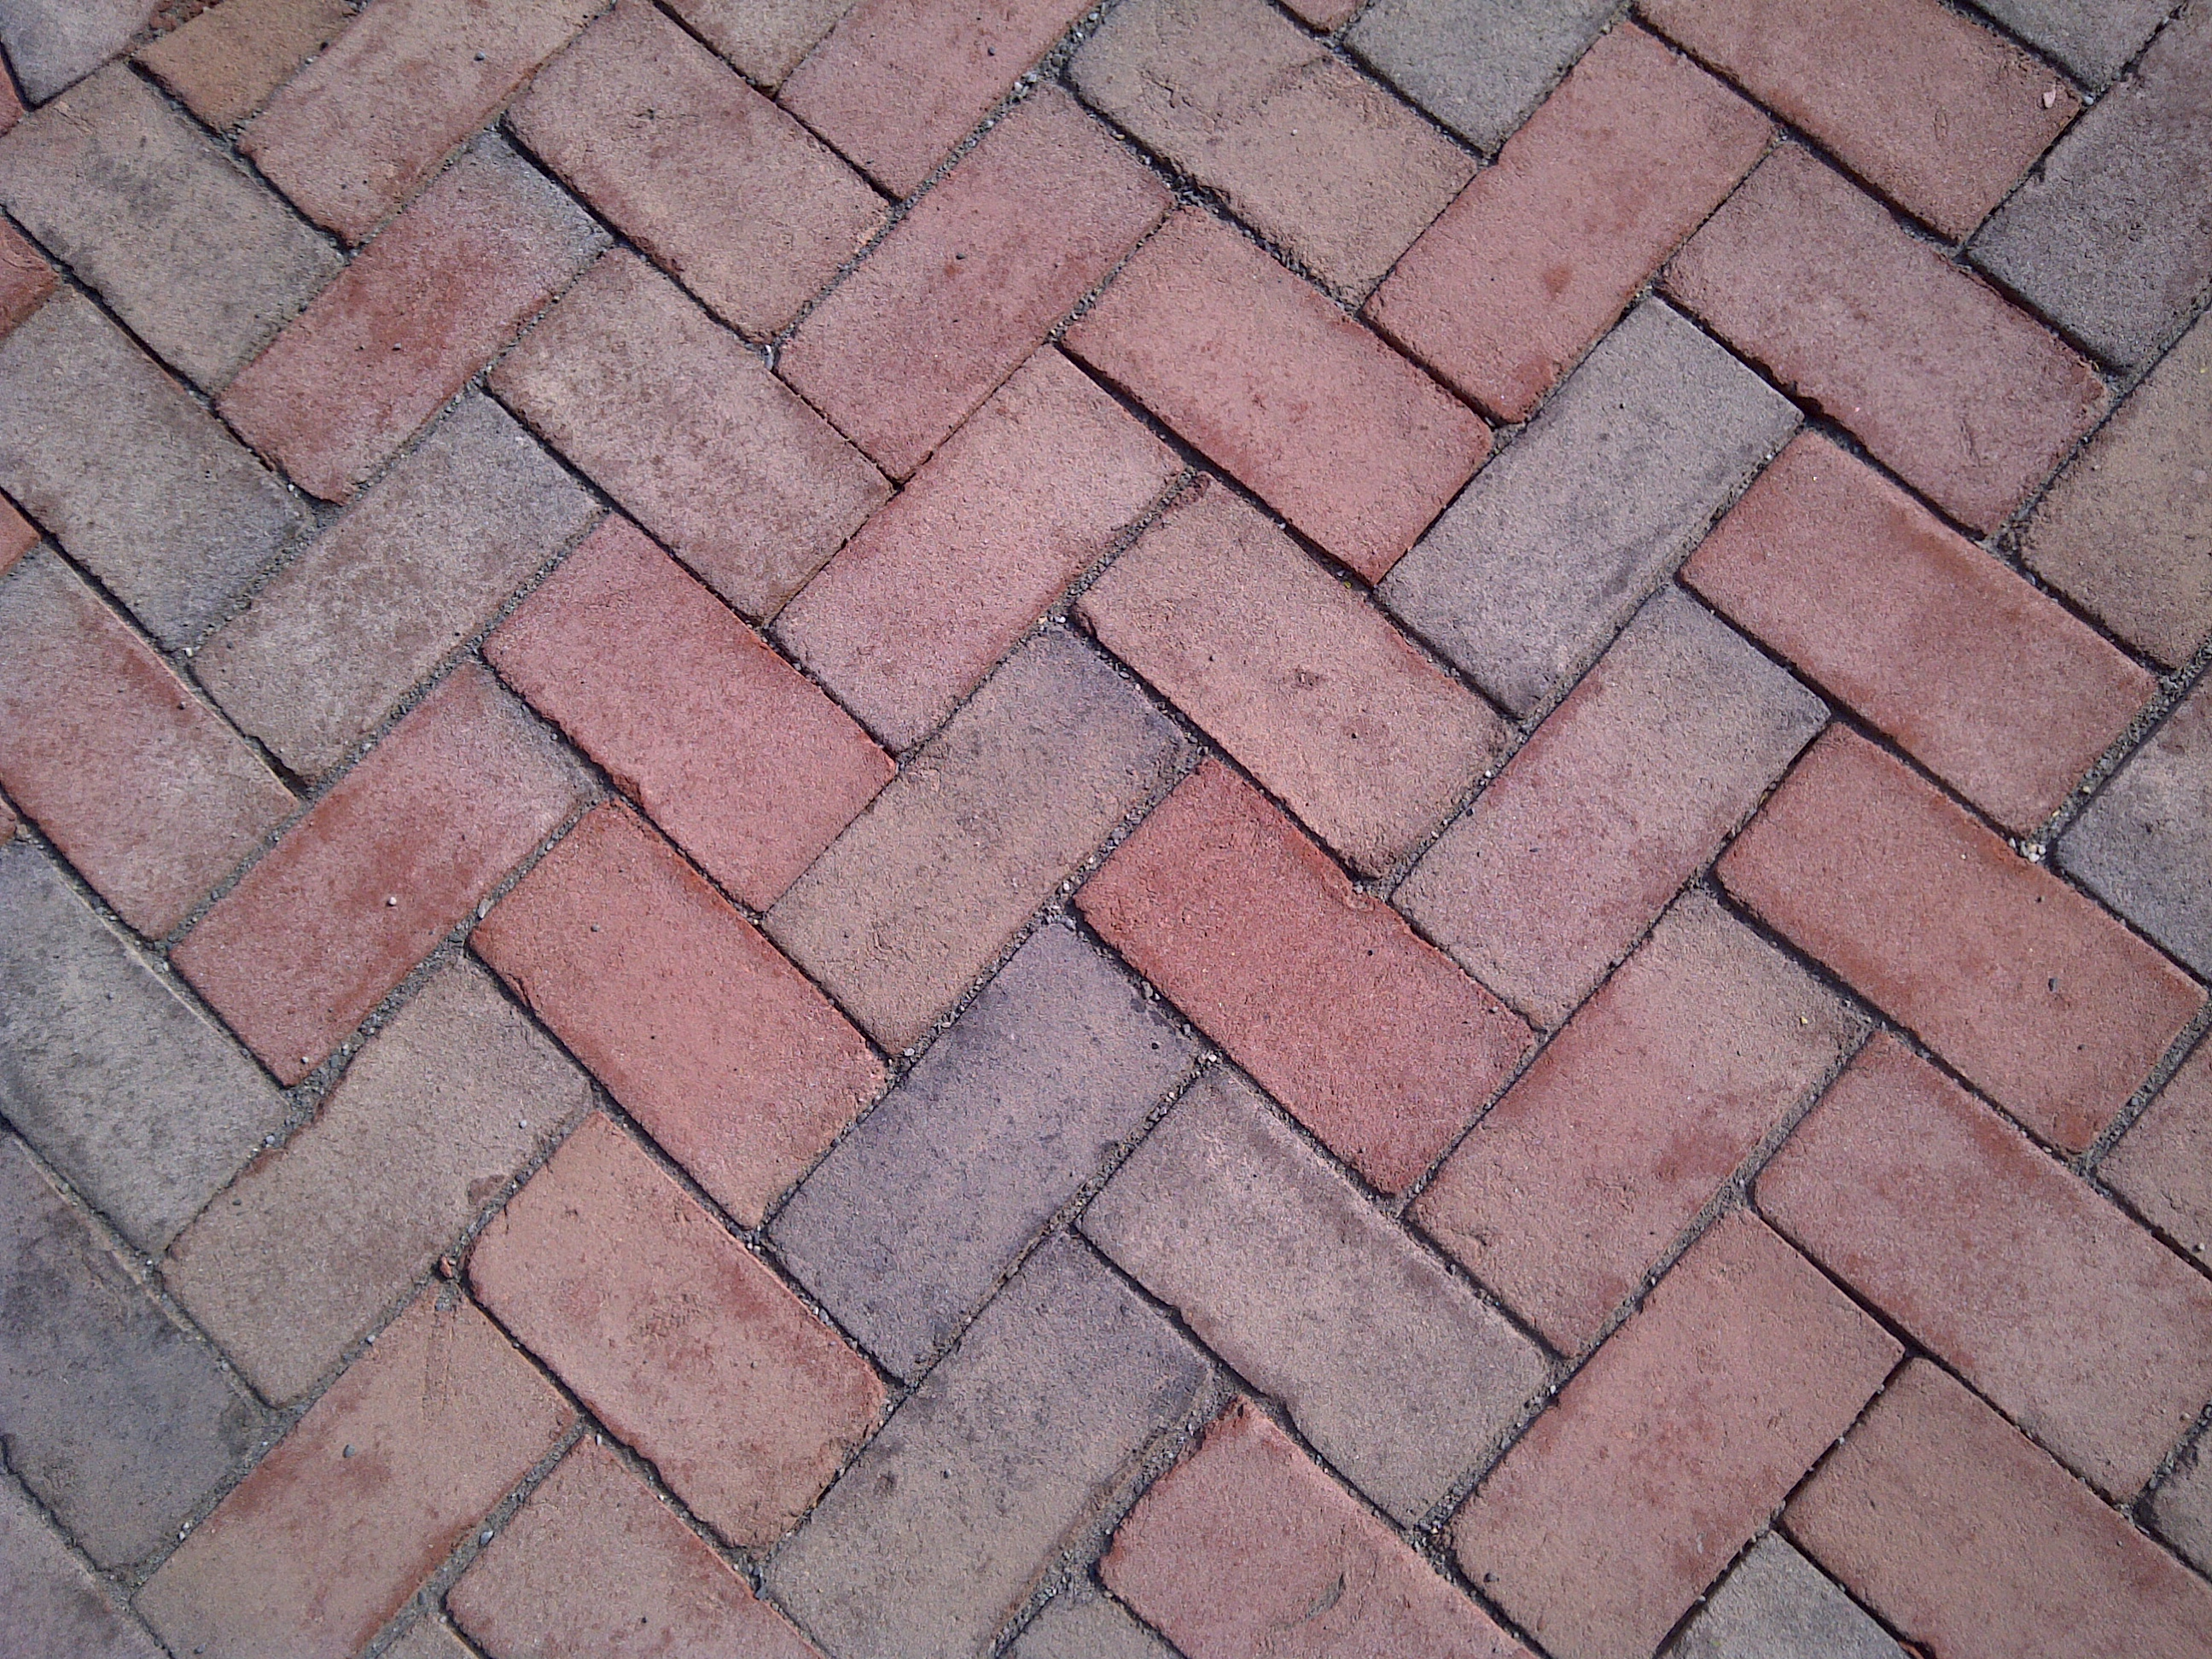 Pavement bricks photo